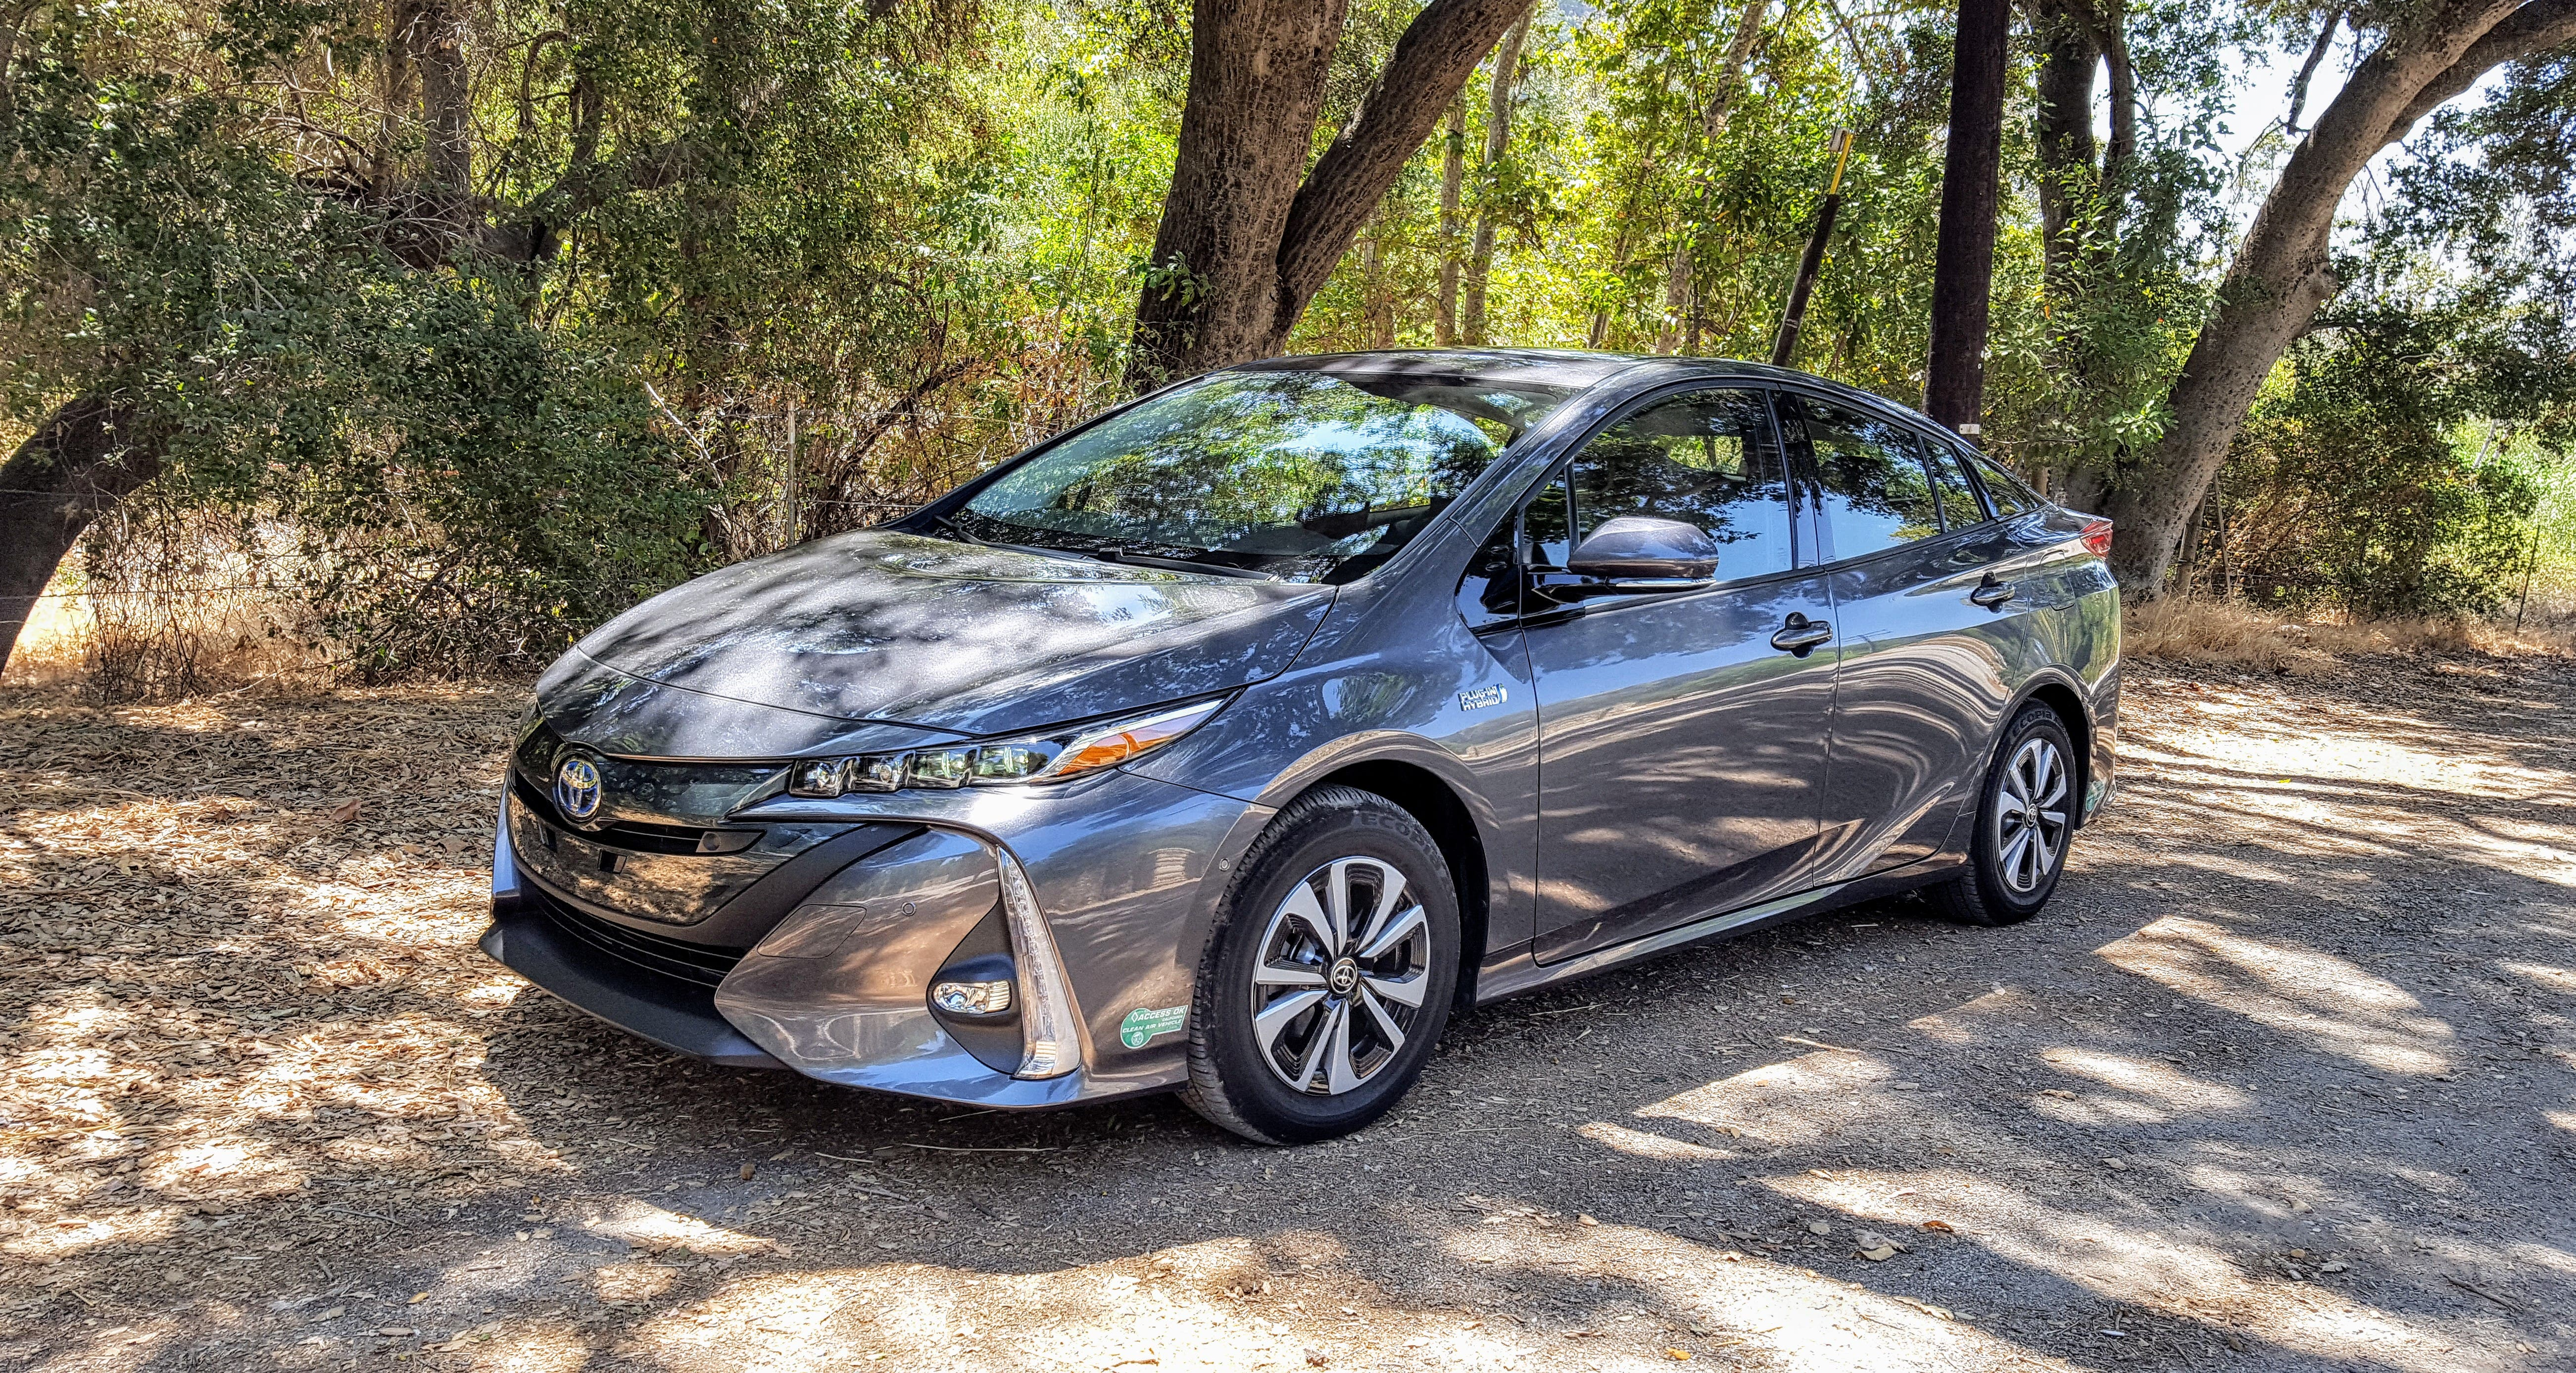 Prius Prime Takes A Diffe Roach That Feels Much More Natural It Defaults To All Electric Mode And Regulates The Throttle Accelerator Response